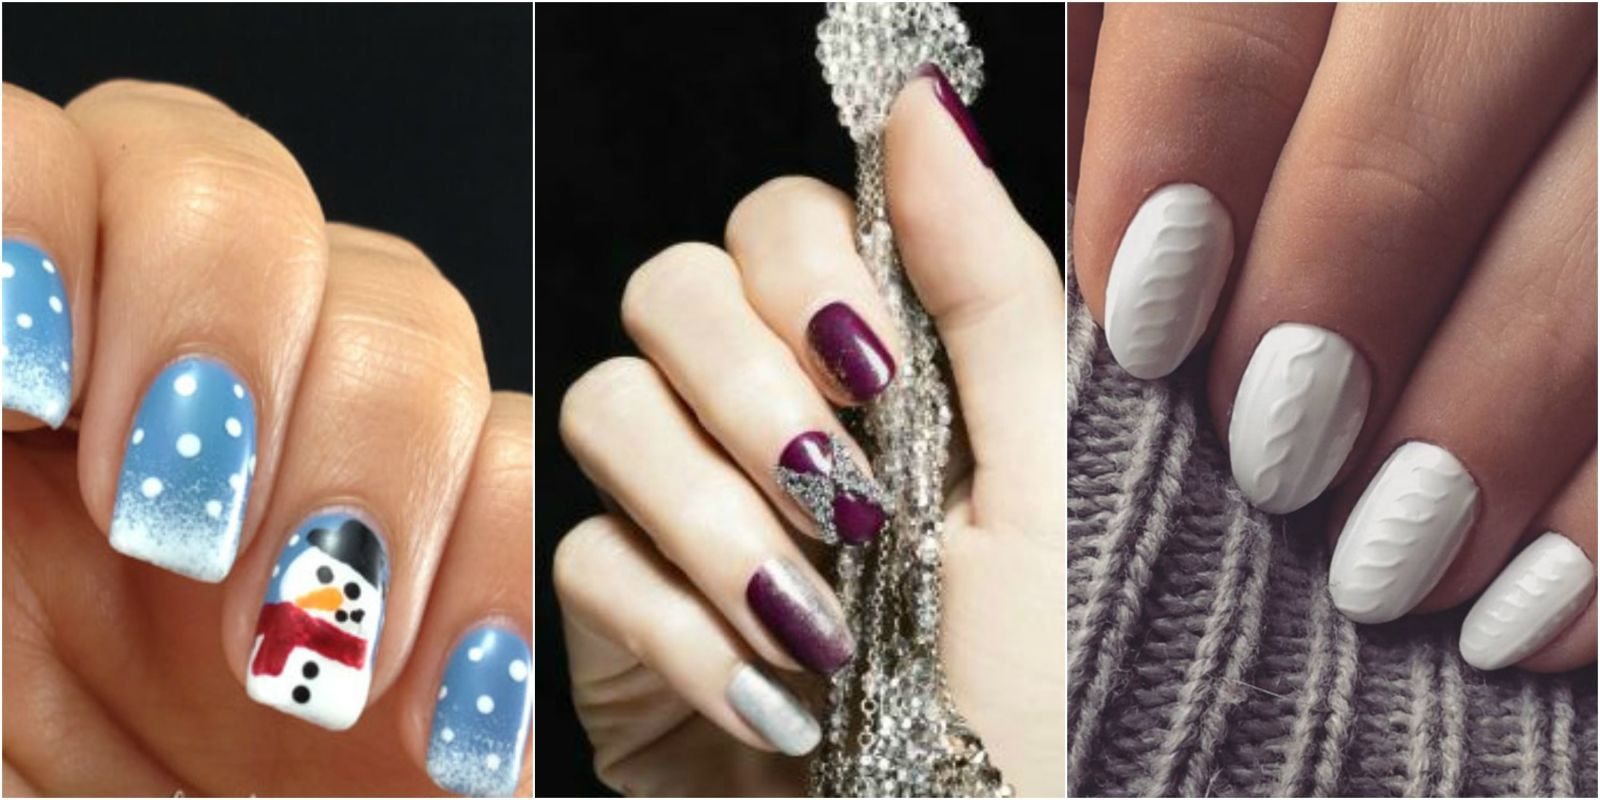 16 winter nail art ideas designs for new years and holiday nails prinsesfo Images